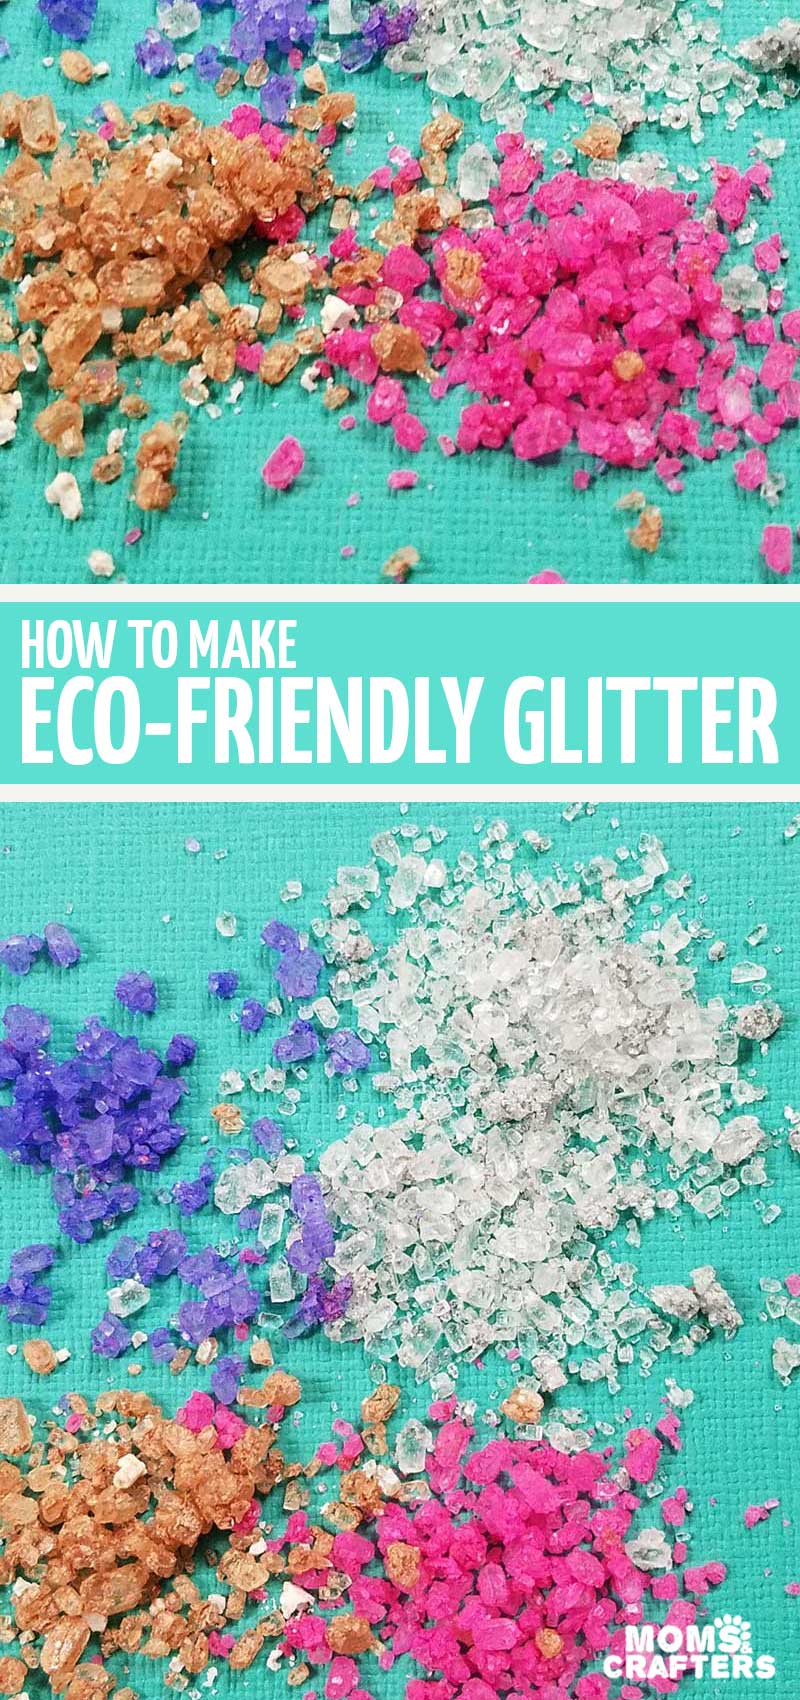 Click to learn how to make your own biodegradable glitter for your paper crafts!